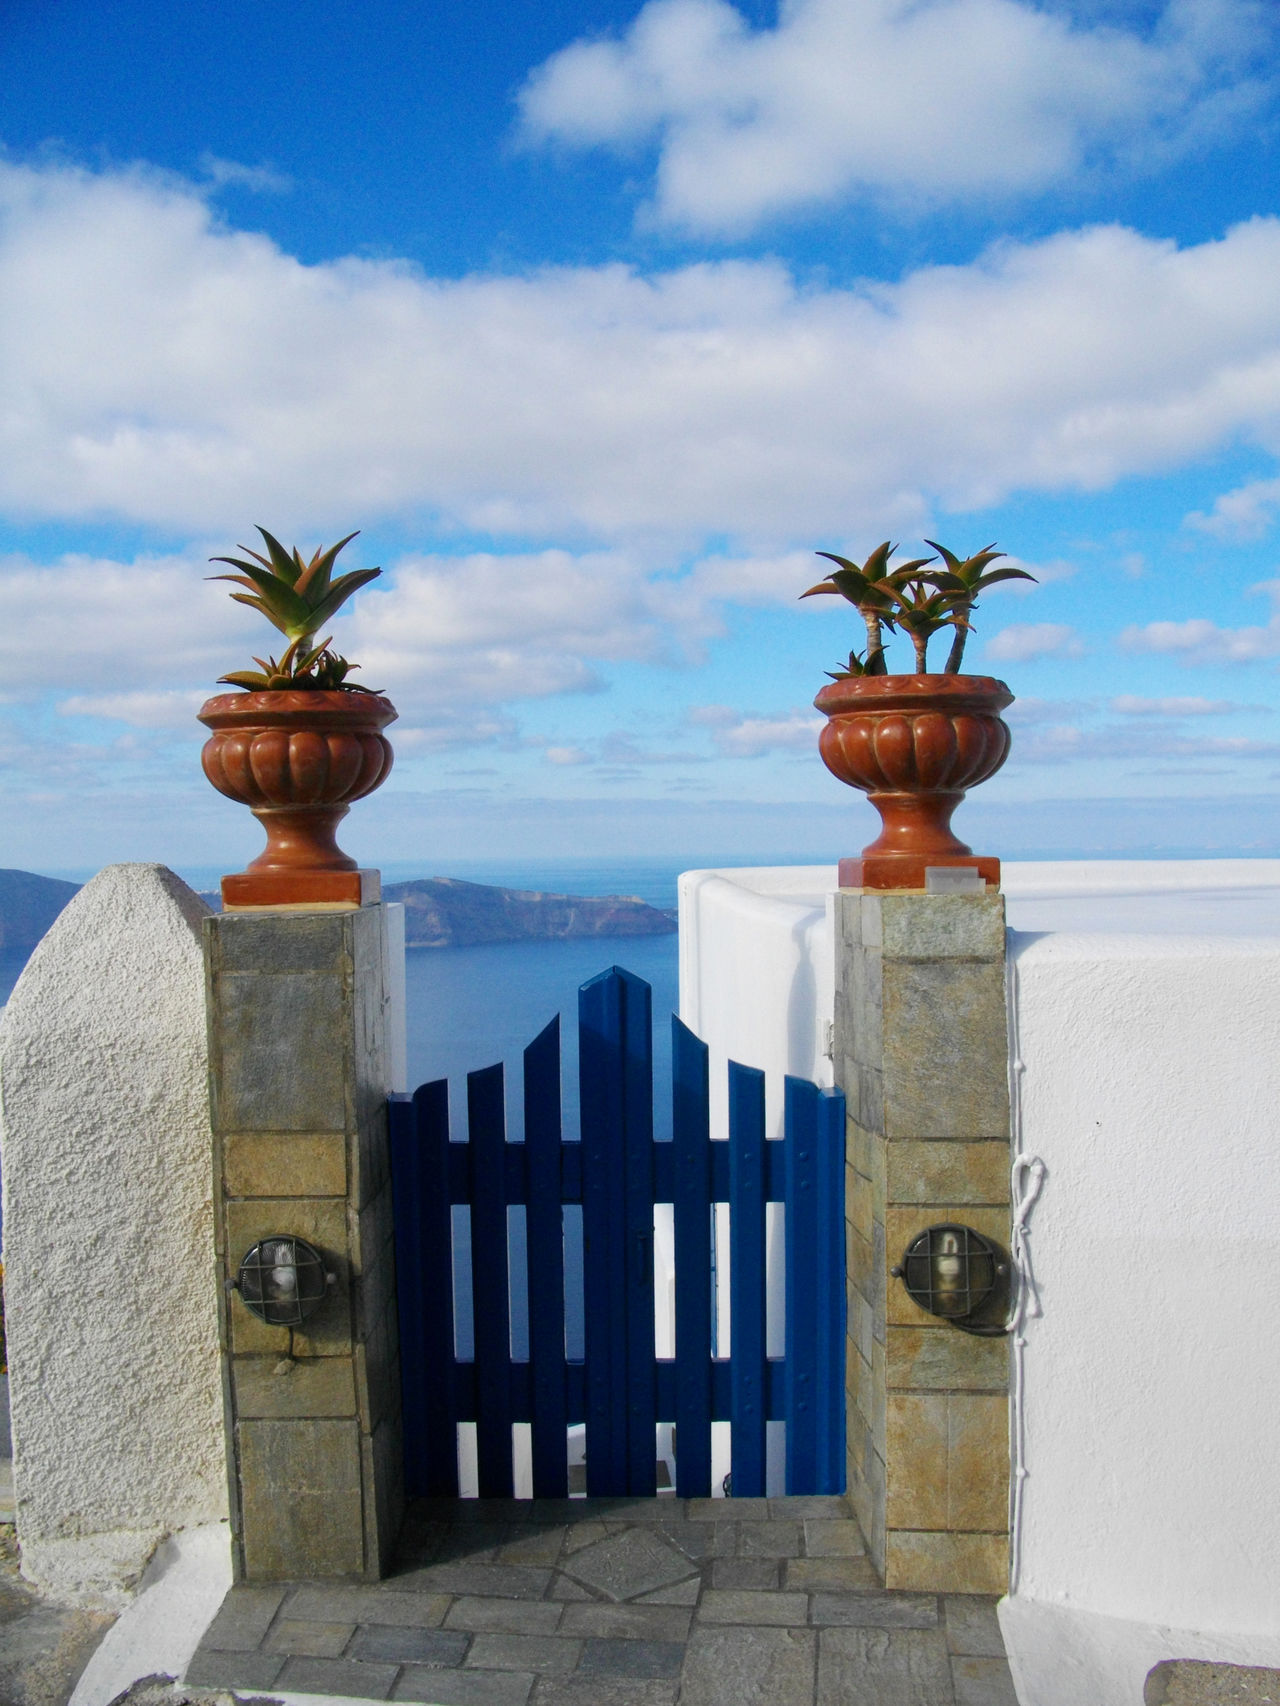 Balcony Calm Cloud - Sky Cloudy Day Gate Horizon Jars  Nature Ocean Outdoors Palnts Potted Plants Scenics Sea Sky Tranquil Scene Tranquility Water